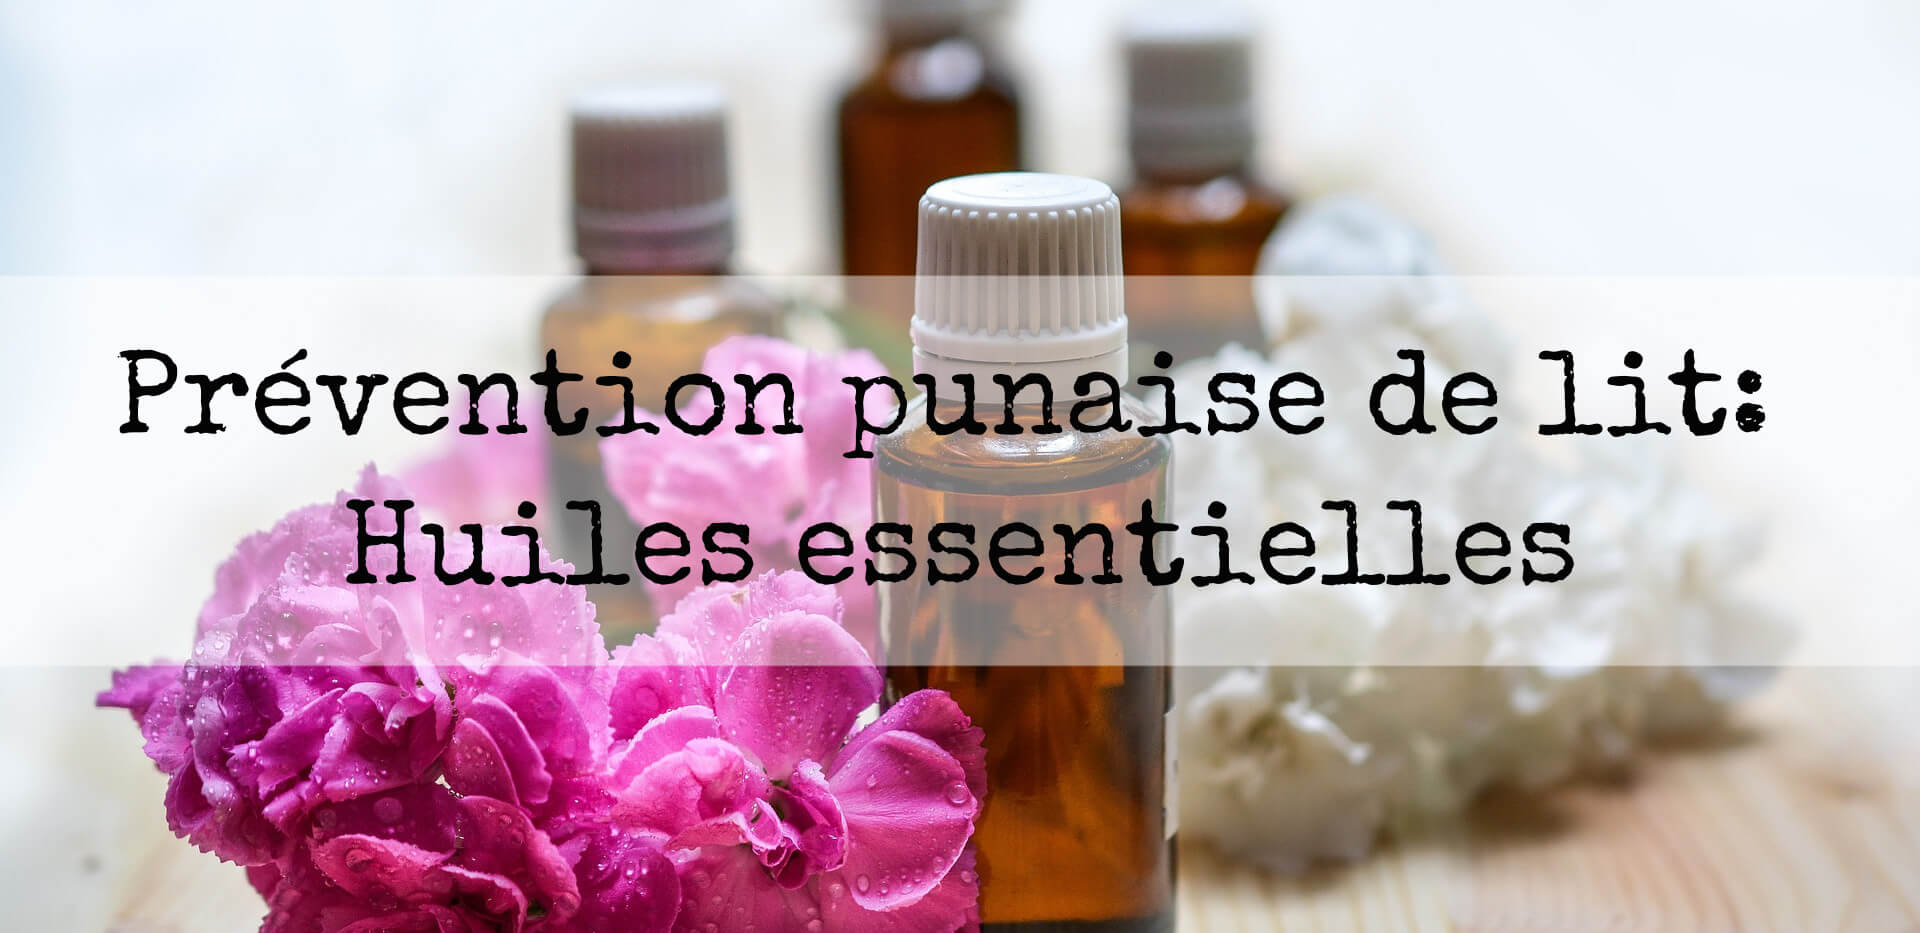 prevention punaise de lit